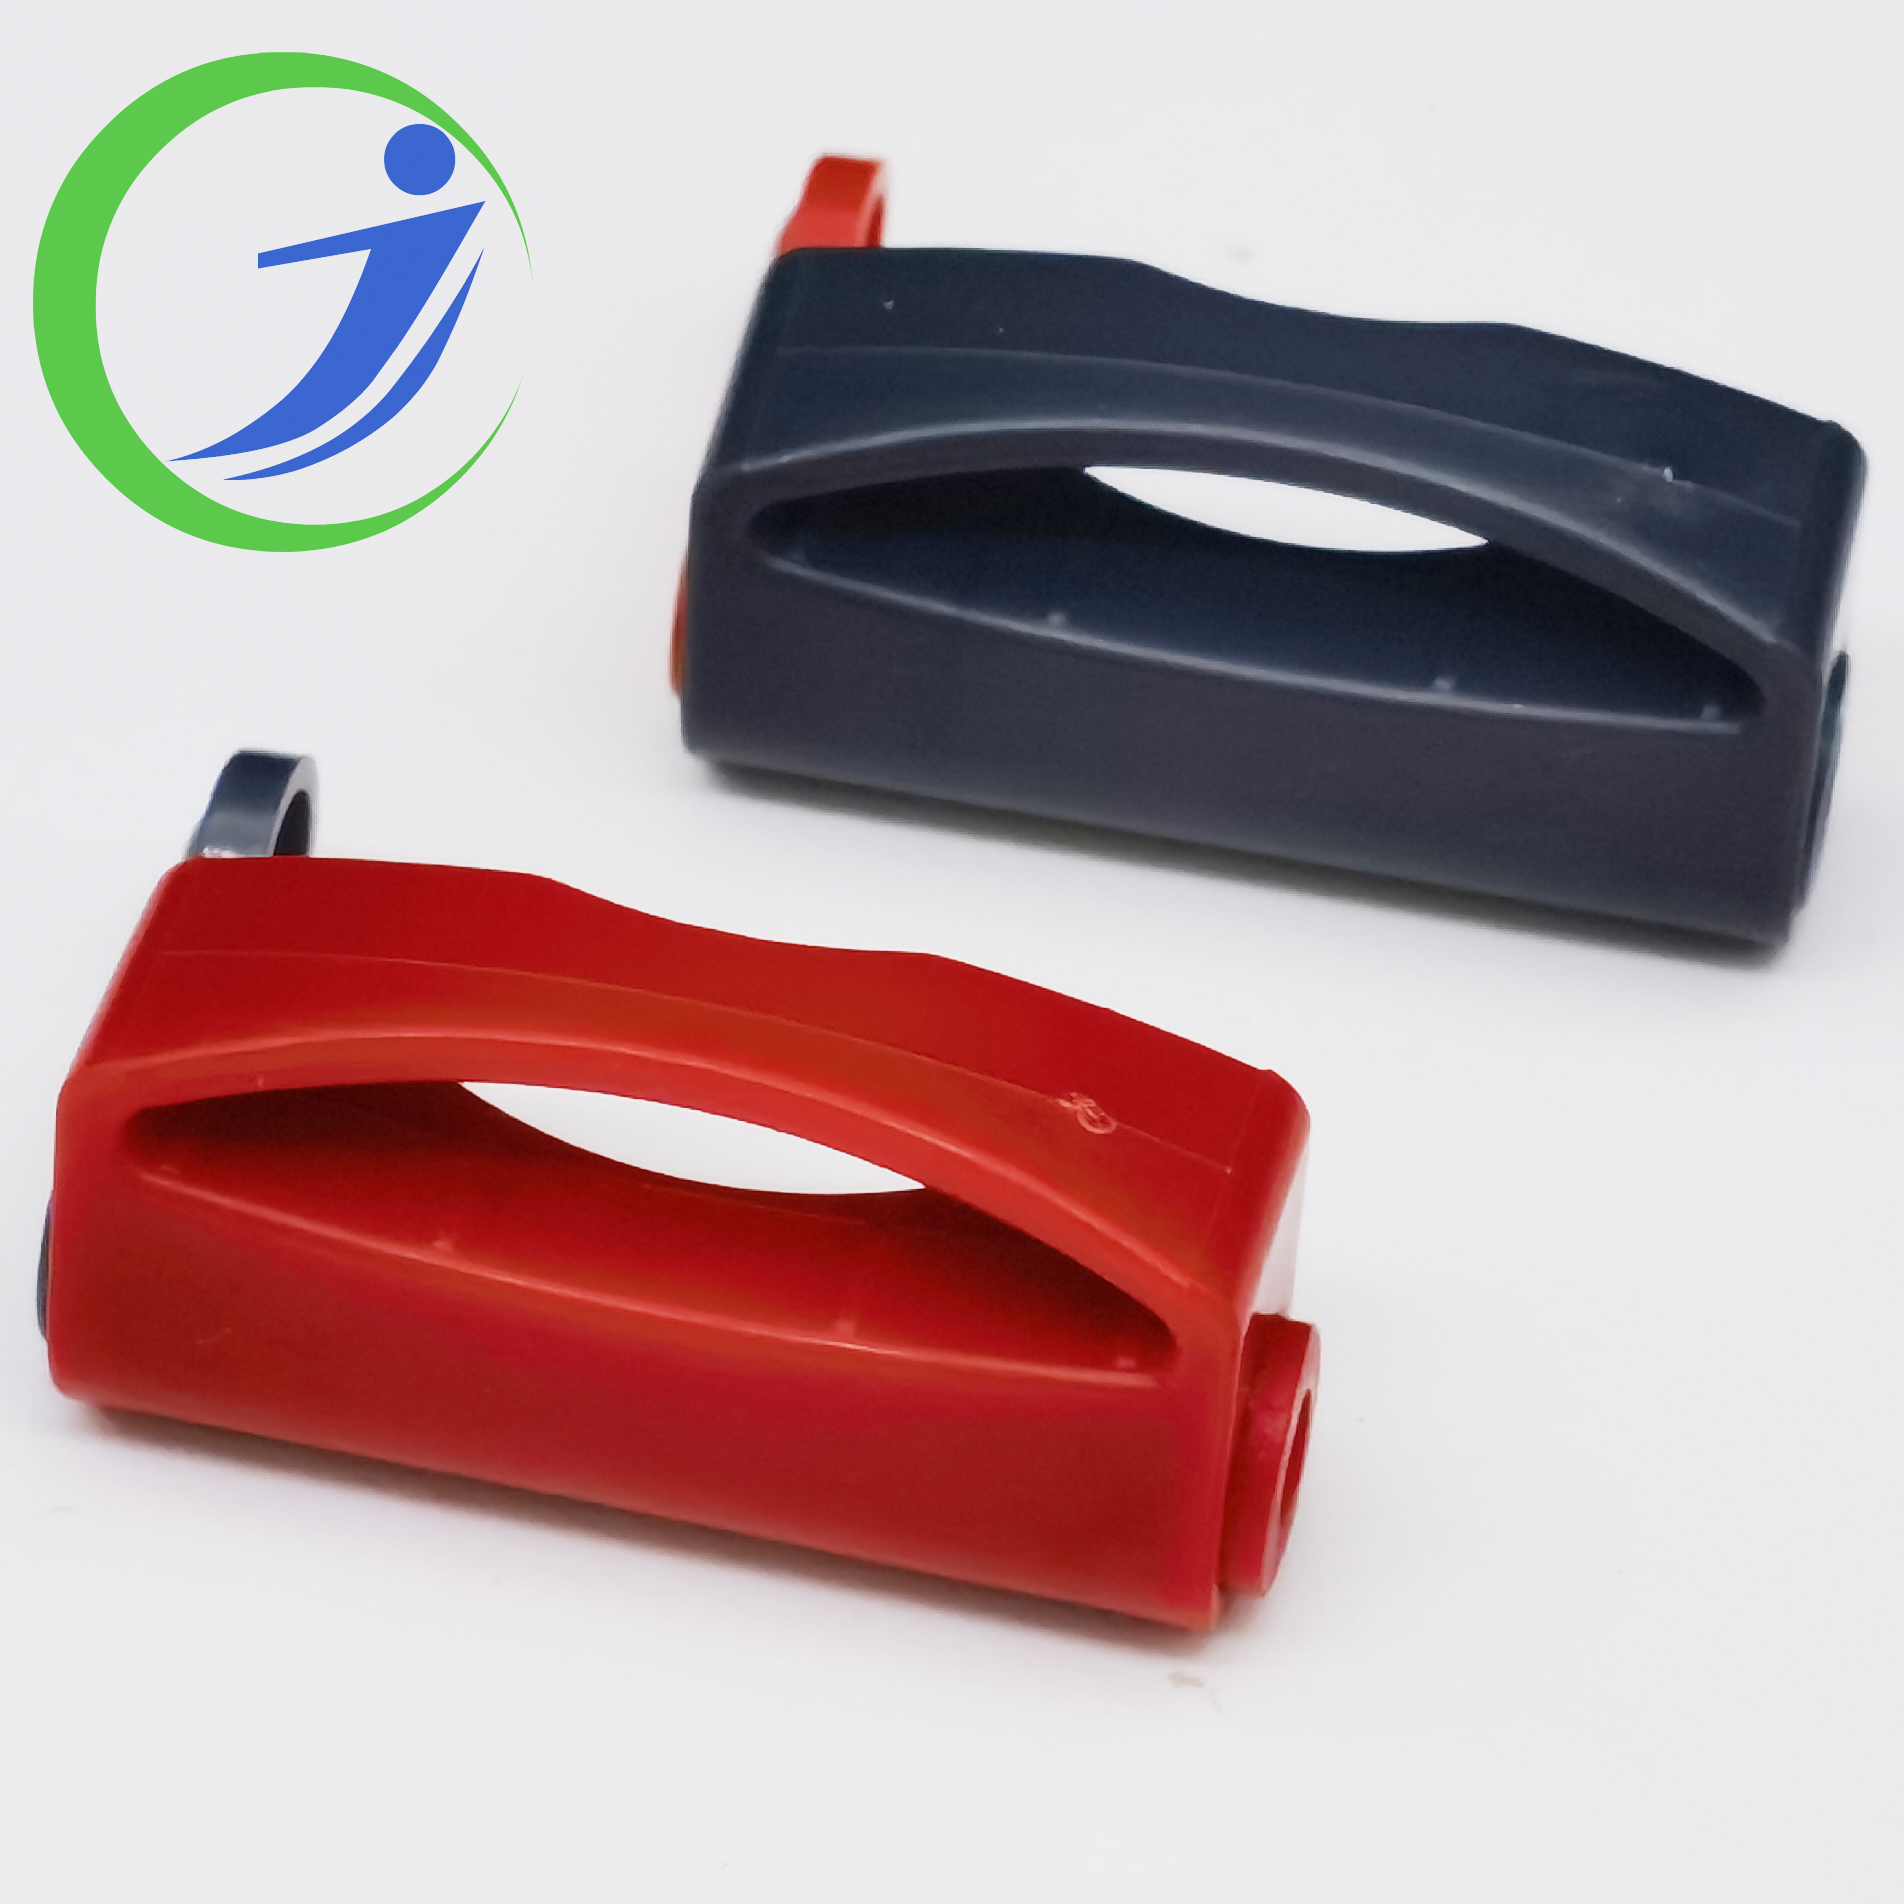 Red-gray and gray-red Switch Trigger Lock V7 V8 V10 V11 Vacuum Cleaner Power Button Holder accessories